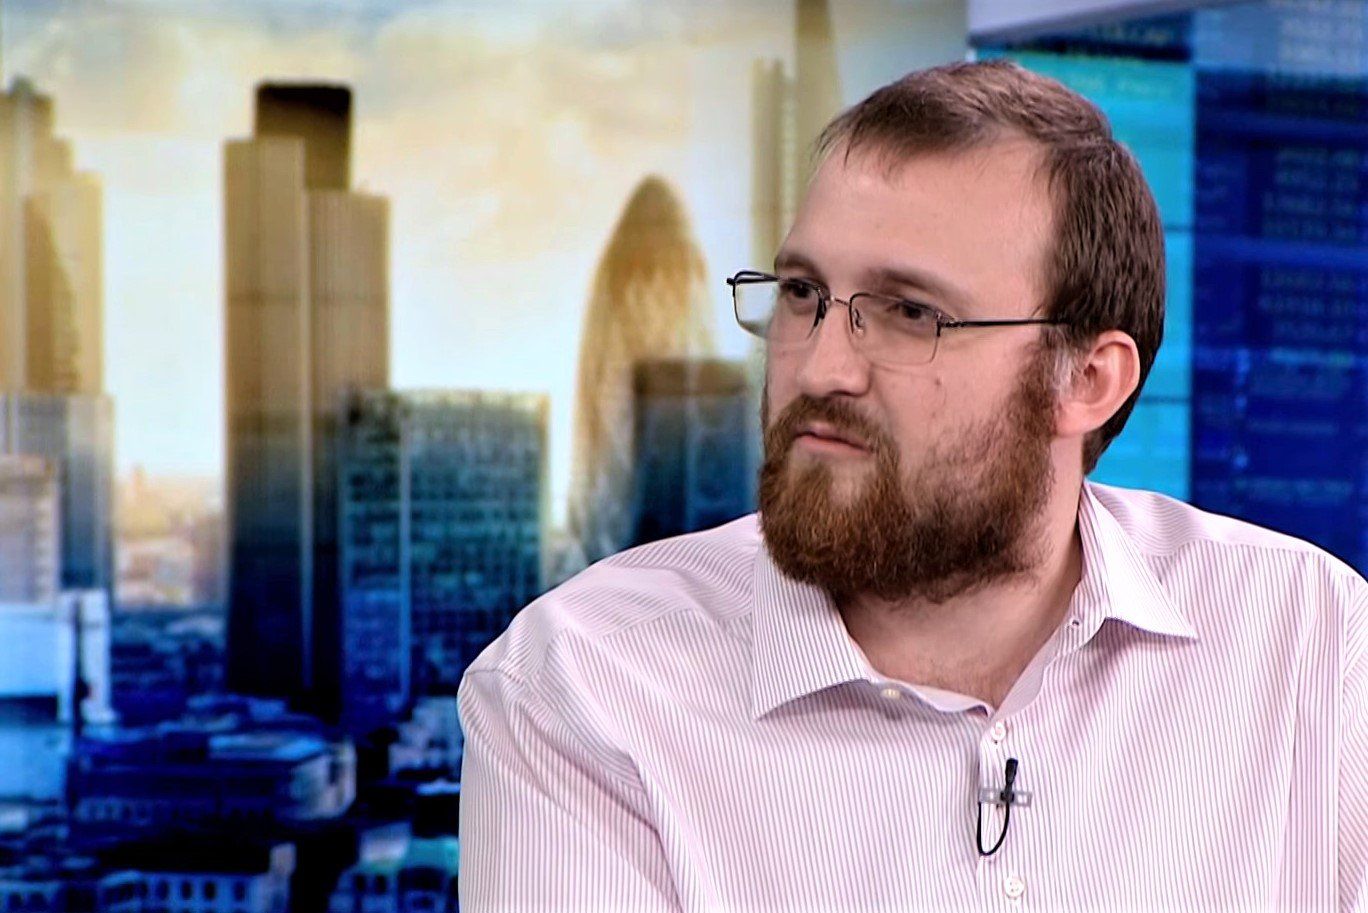 Cardano's Charles Hoskinson lashes out at U.S. Treasury for its intentions to 'kill' crypto